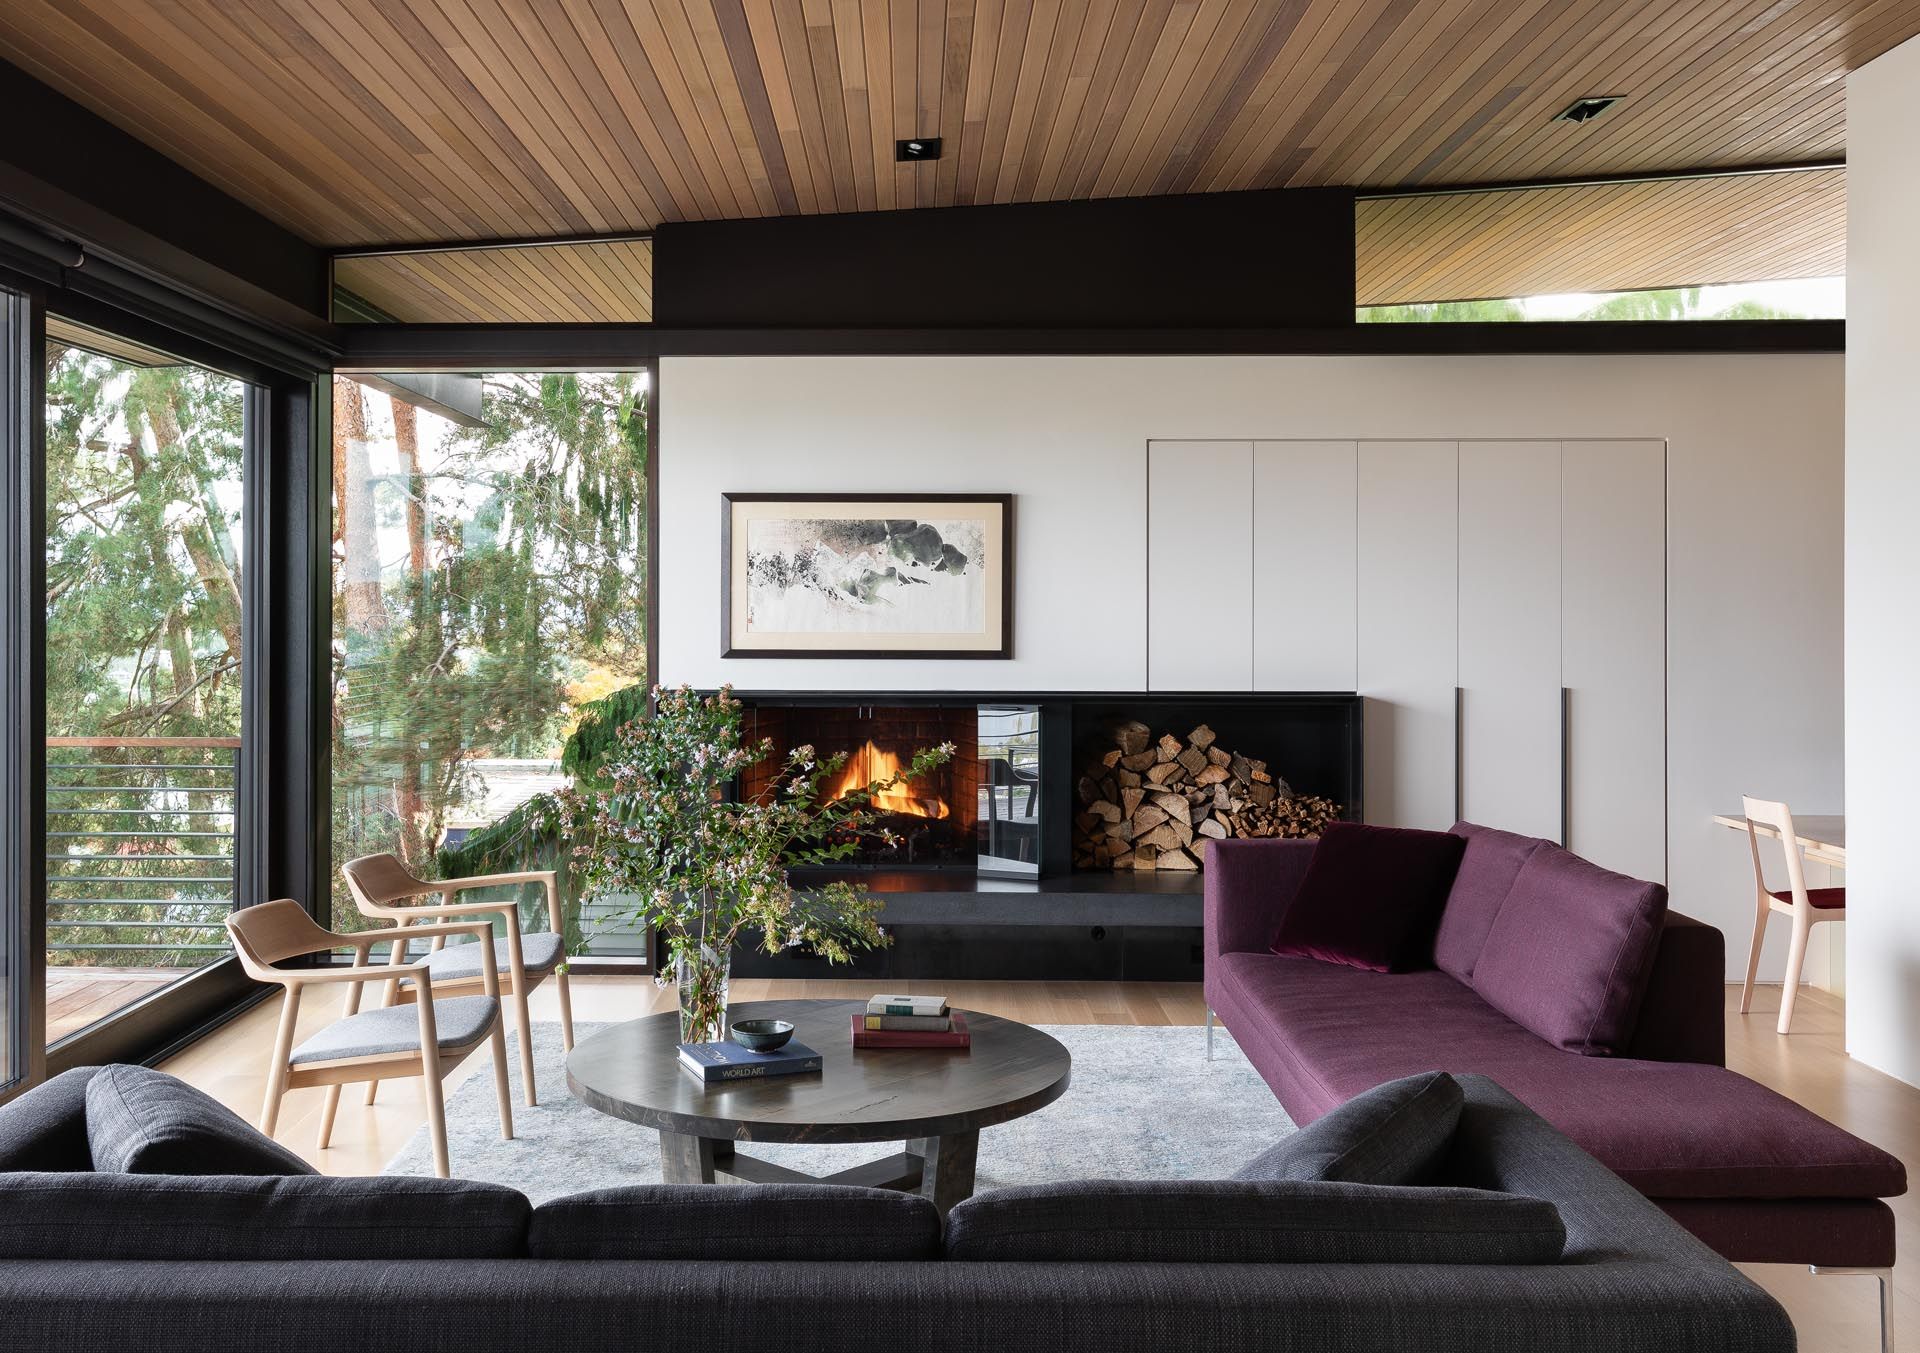 In this modern living room there's a fireplace and clerestory windows.